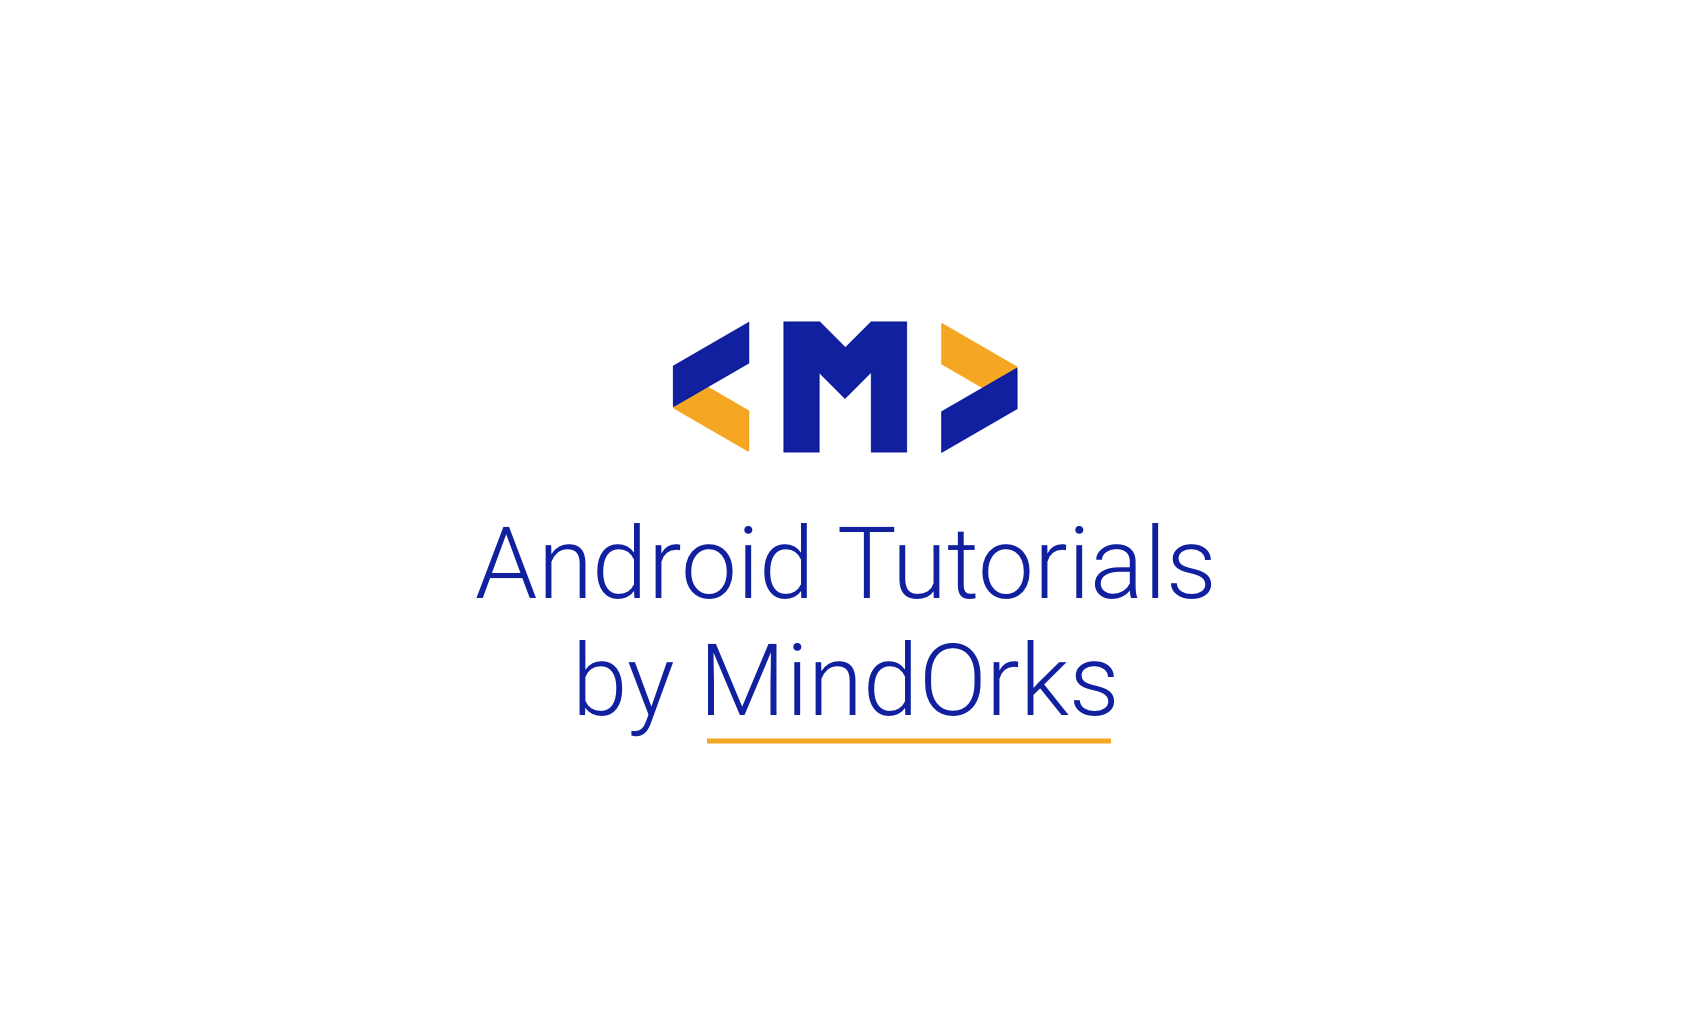 GitHub - MindorksOpenSource/best-android-tutorials: Best